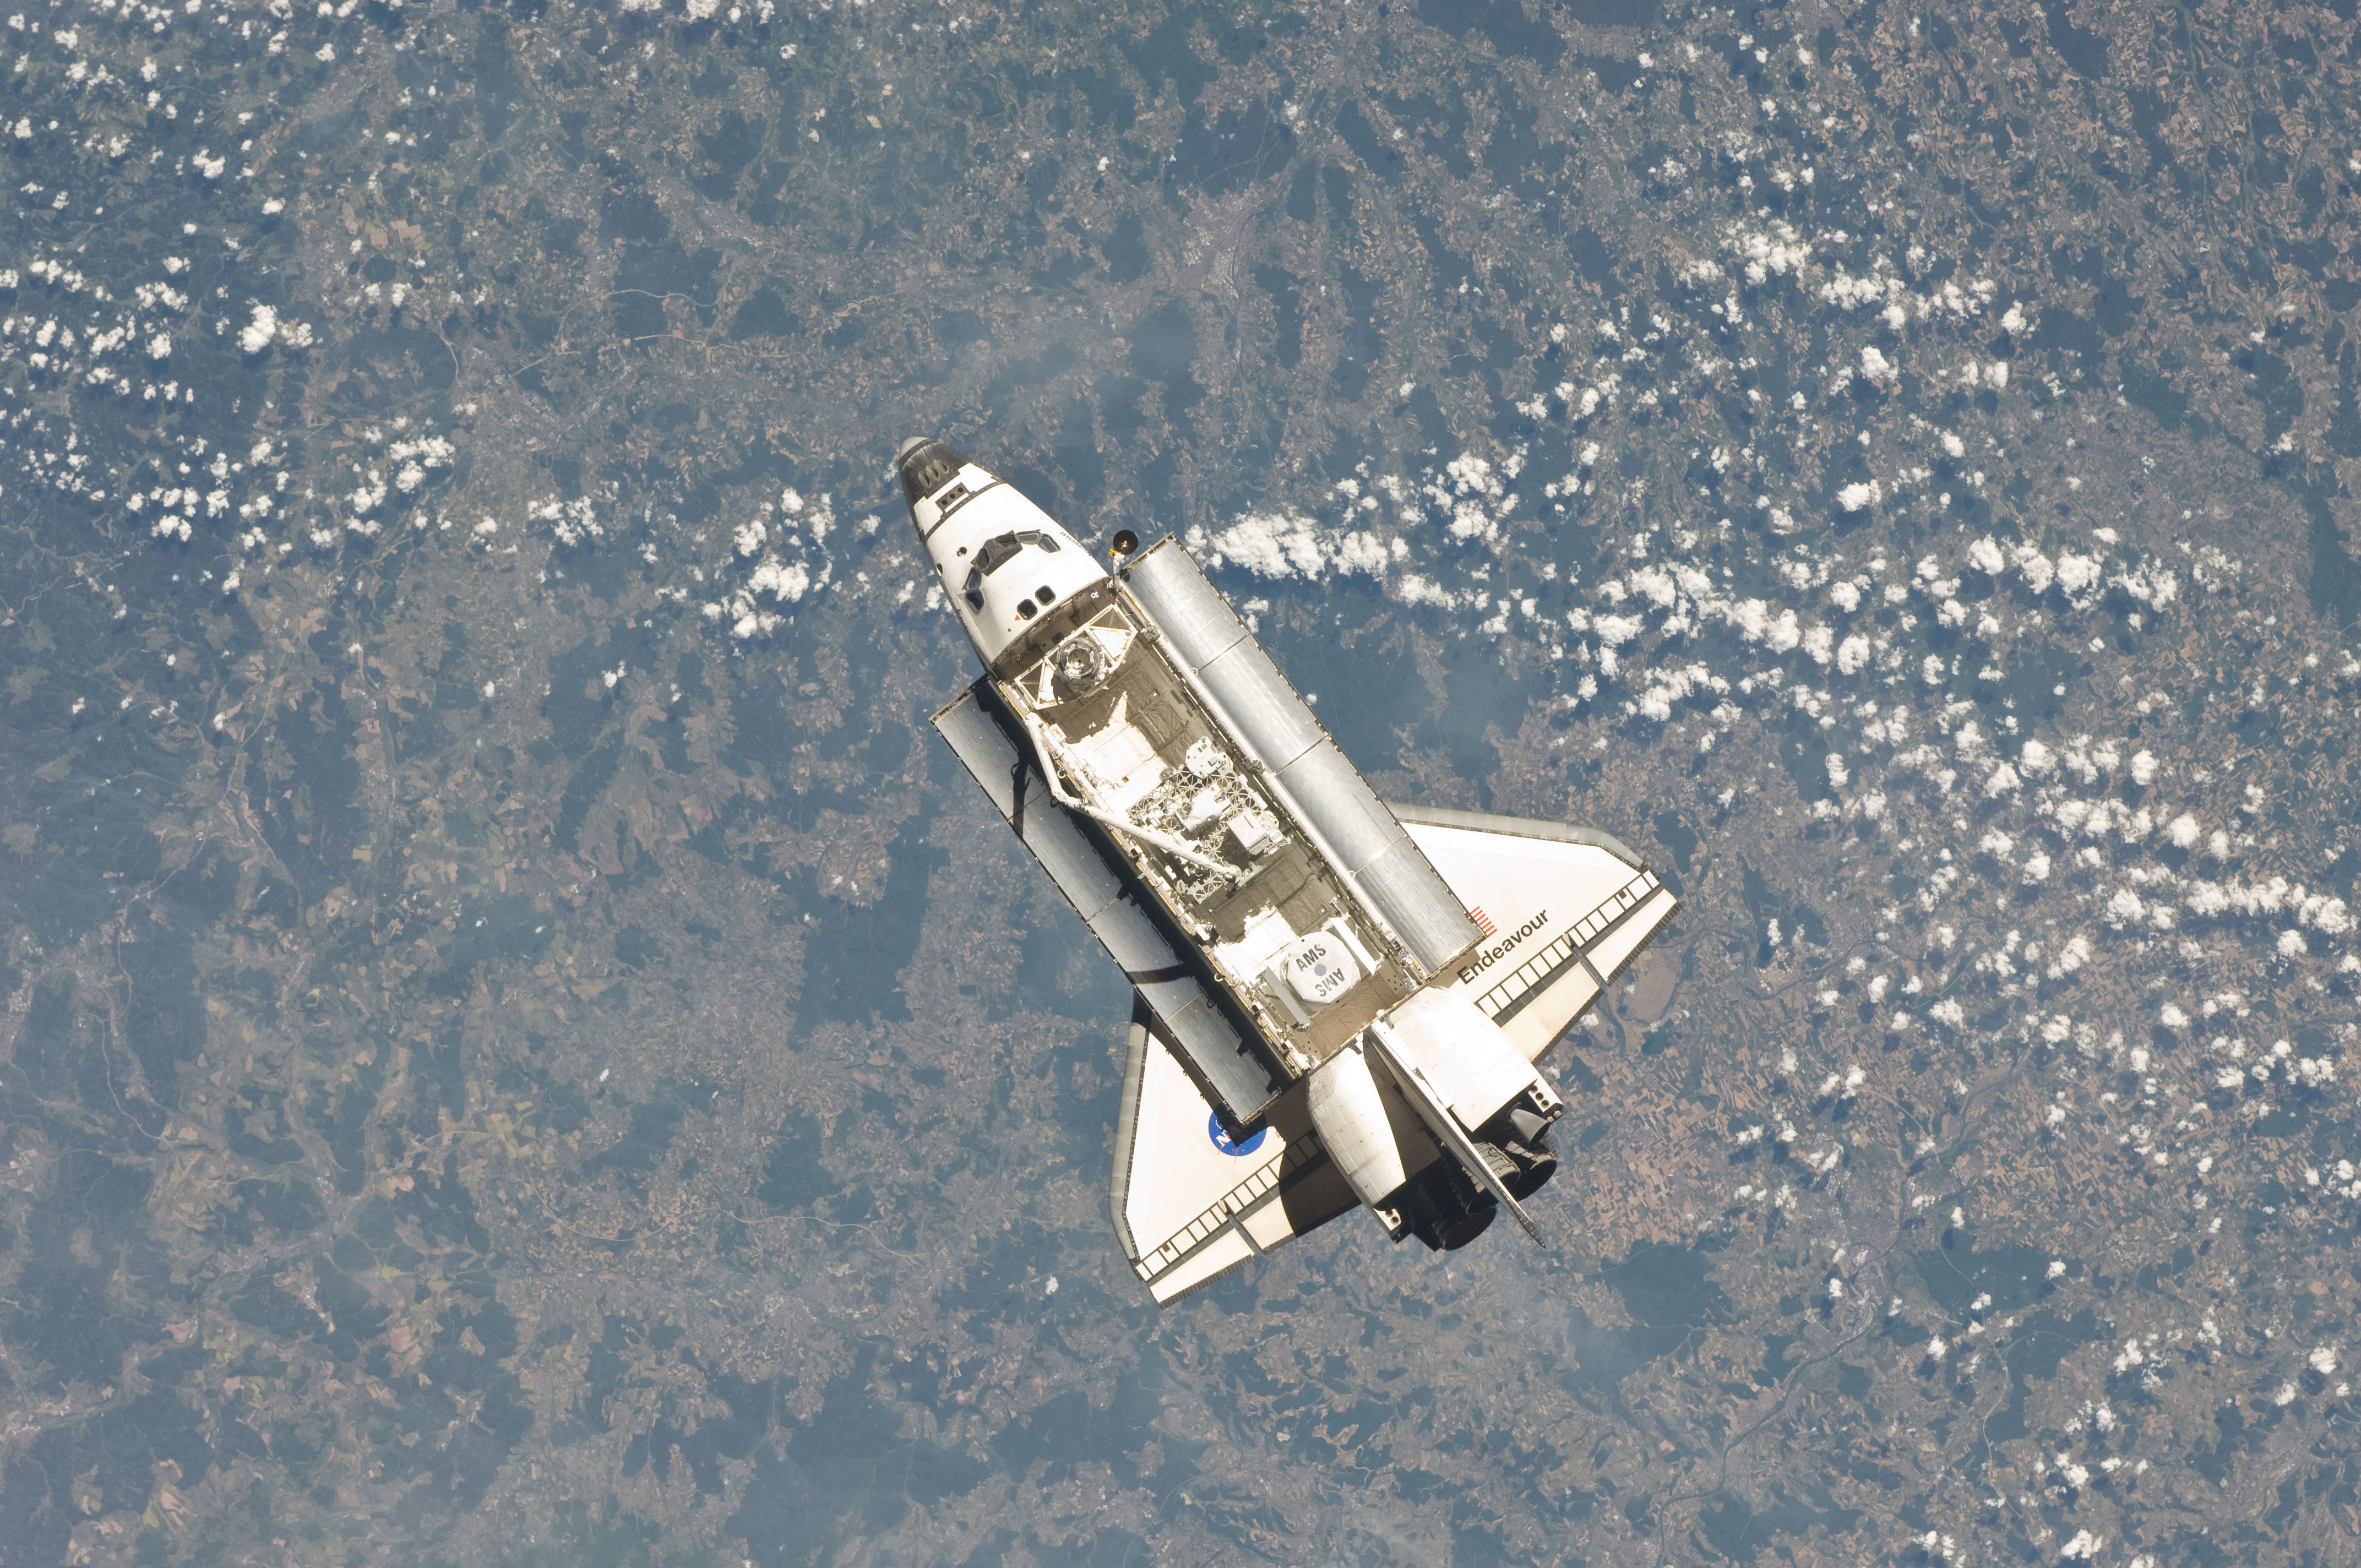 STS-134 Endeavour approaches the space station